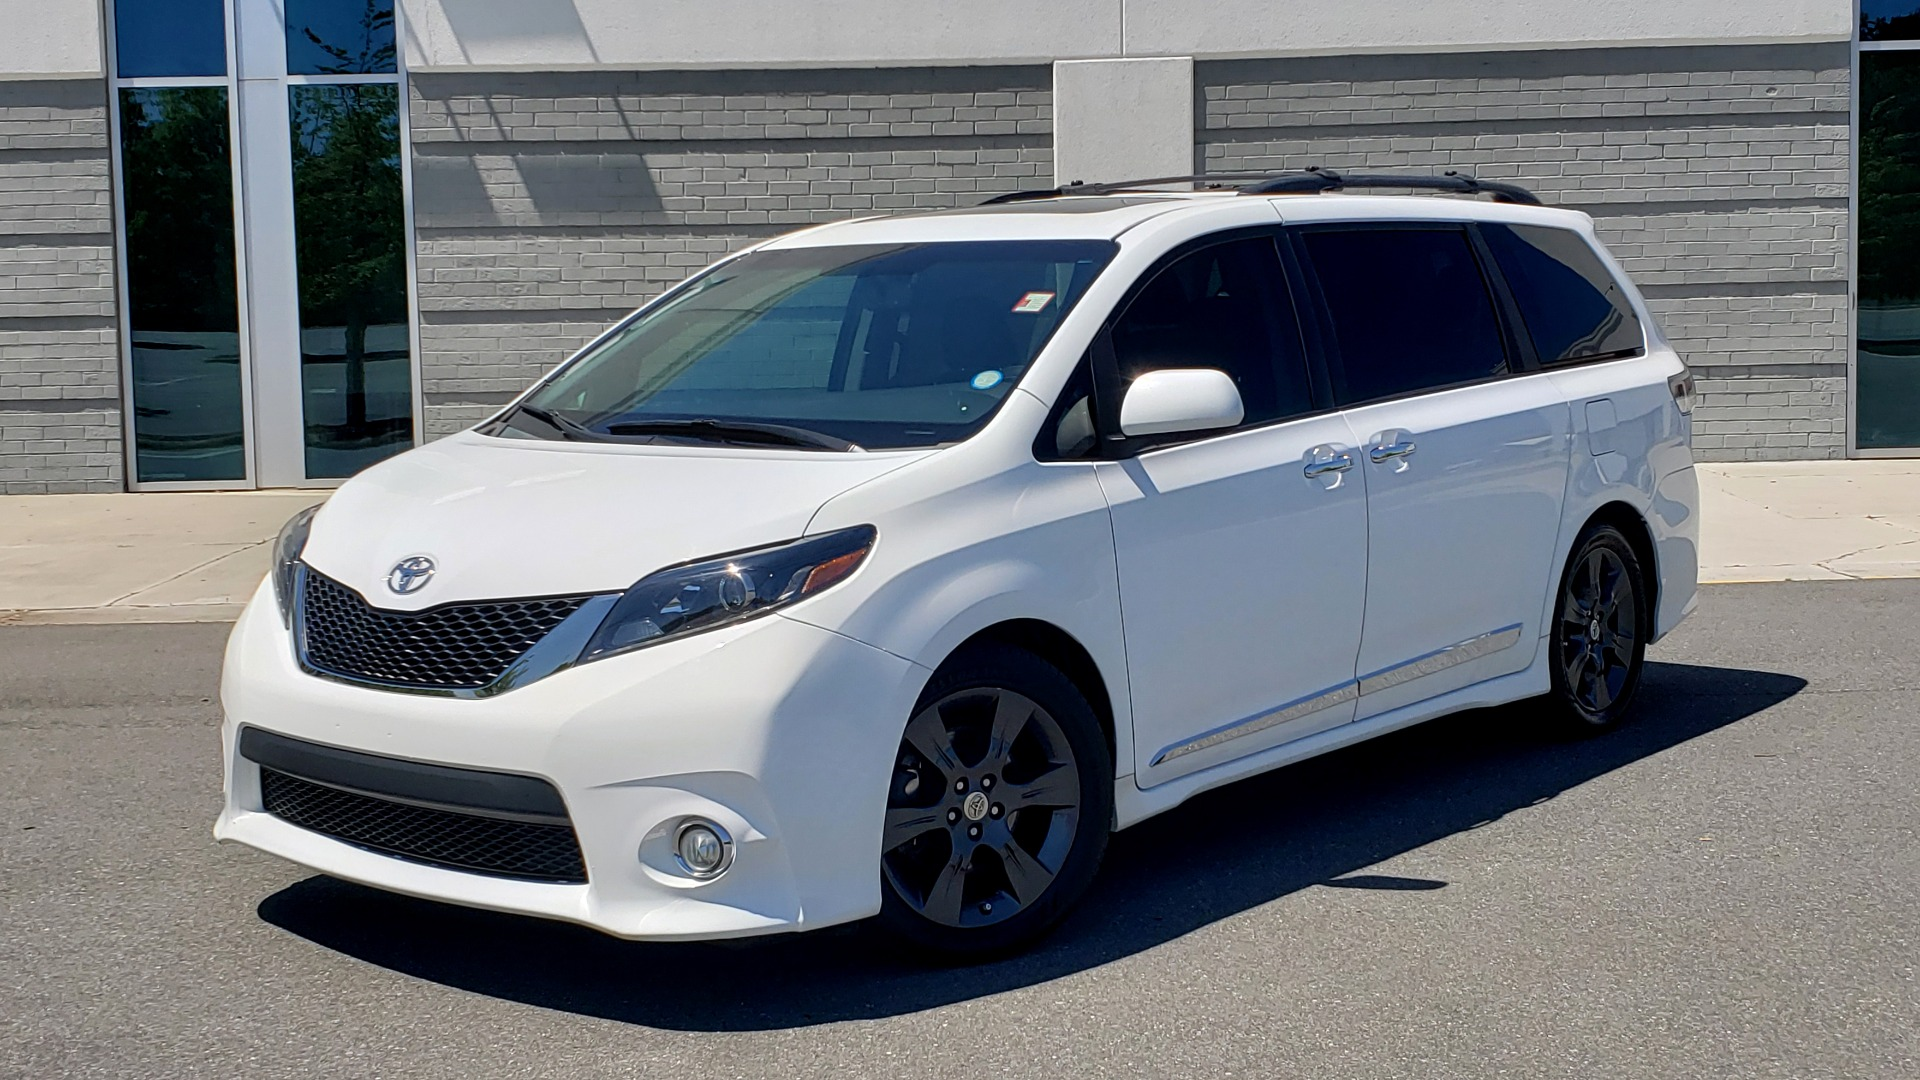 Used 2015 Toyota SIENNA SE 3.5L / FWD / 3-ROWS / 8-PASS / SUNROOF / DVD / REARVIEW for sale $21,995 at Formula Imports in Charlotte NC 28227 7